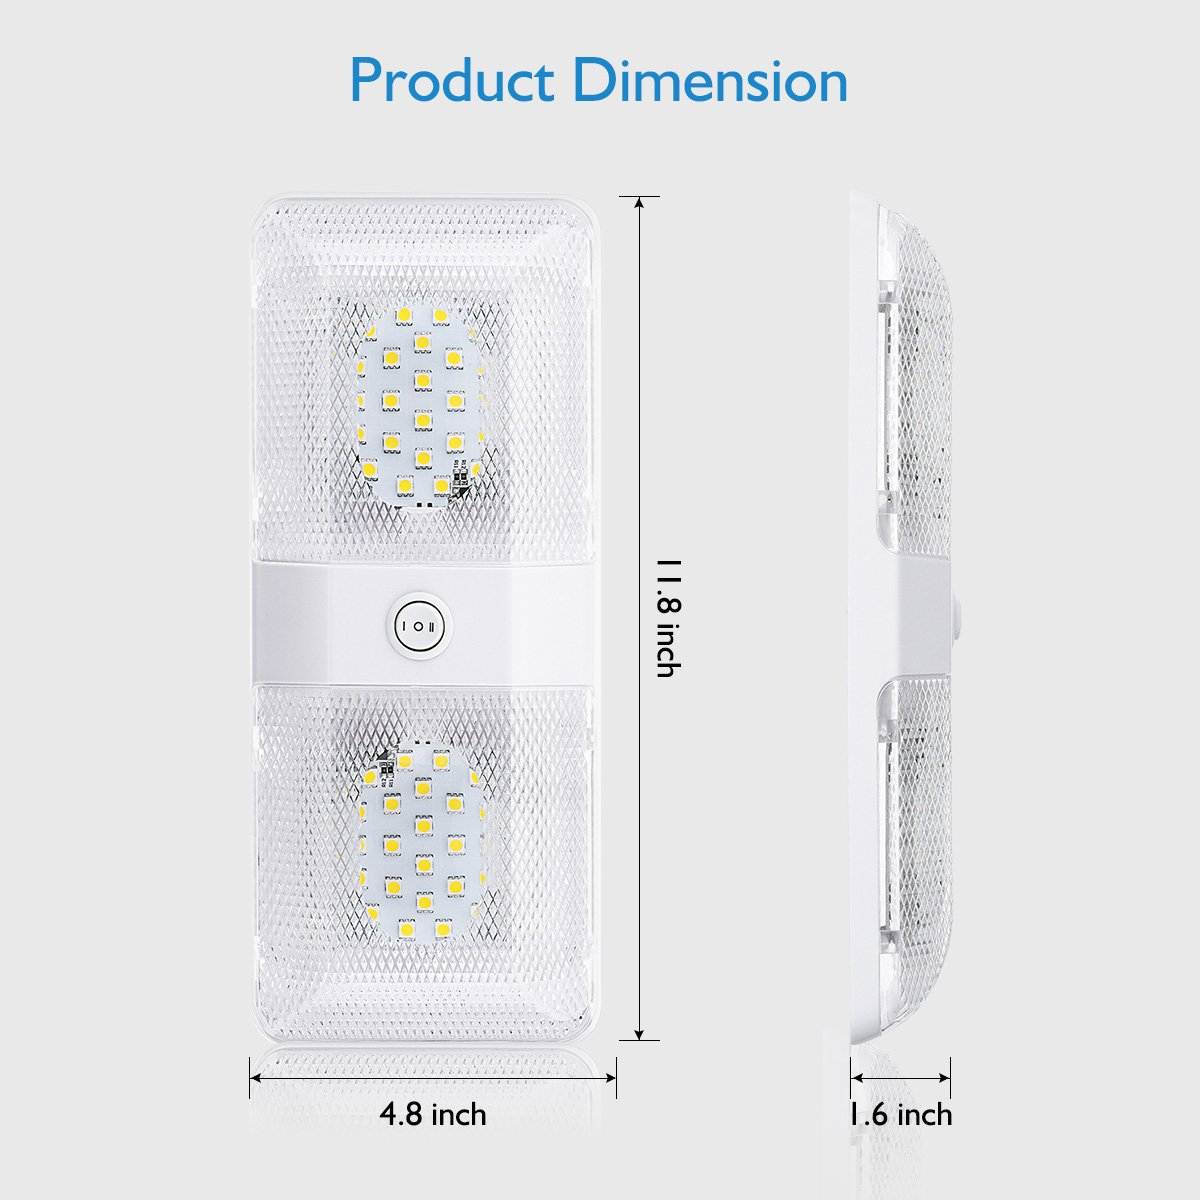 Pack of 2 Audew DC 12V LED RV Ceiling Double Dome Light,Interior Lighting for Camper RV Trailer Boat with Switch,580 Lumens,White